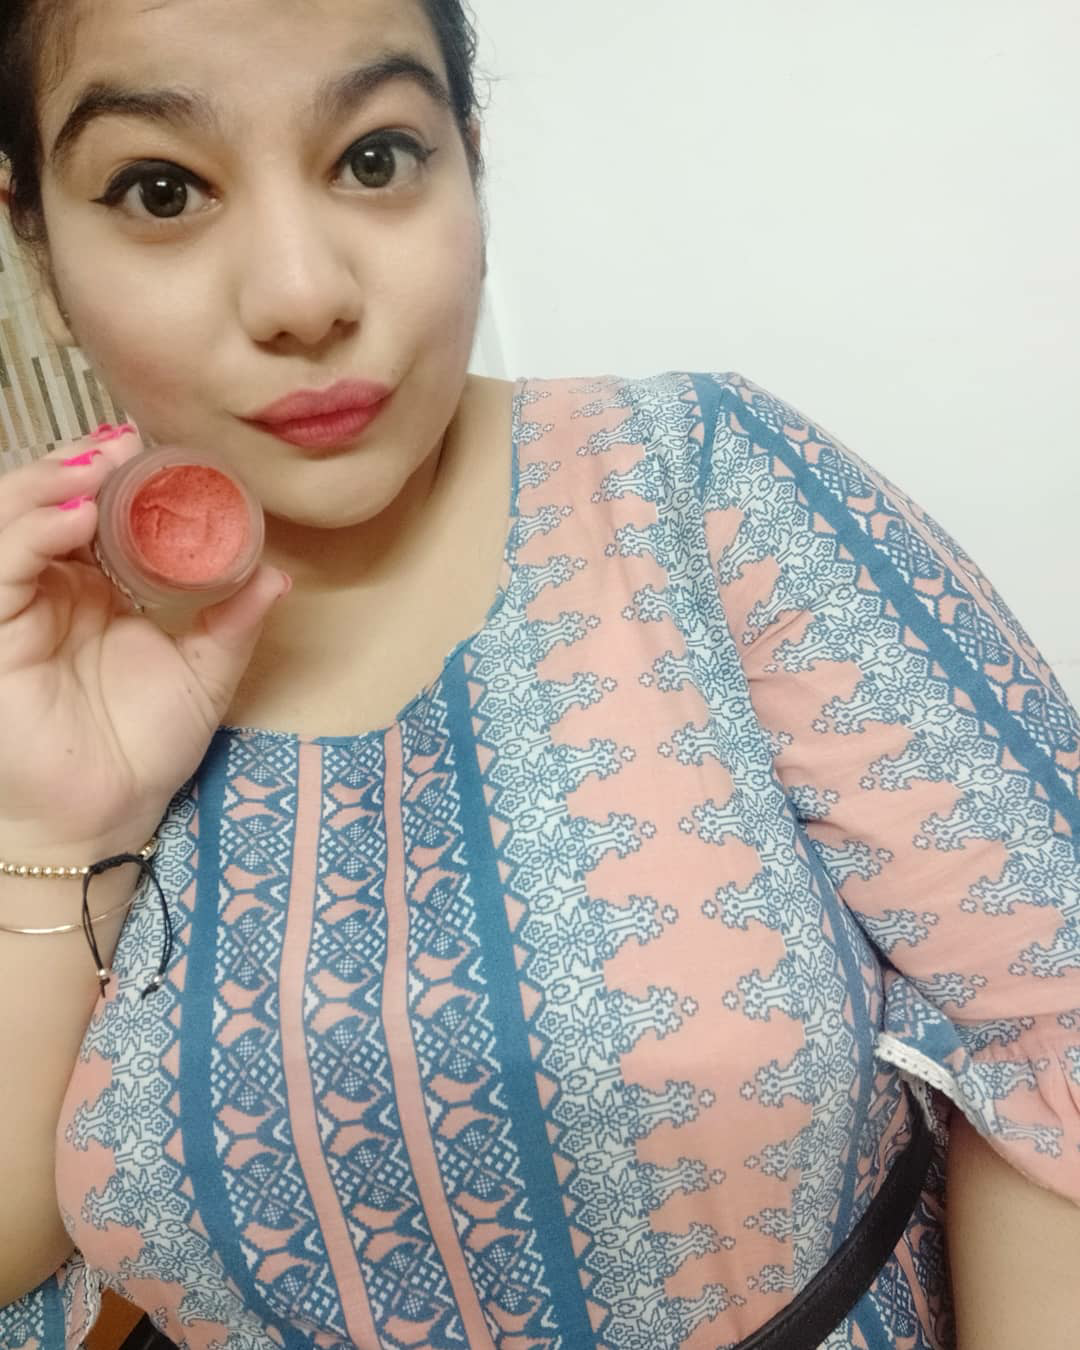 undefined-Lip scrub which worked Amazing on my lips.....